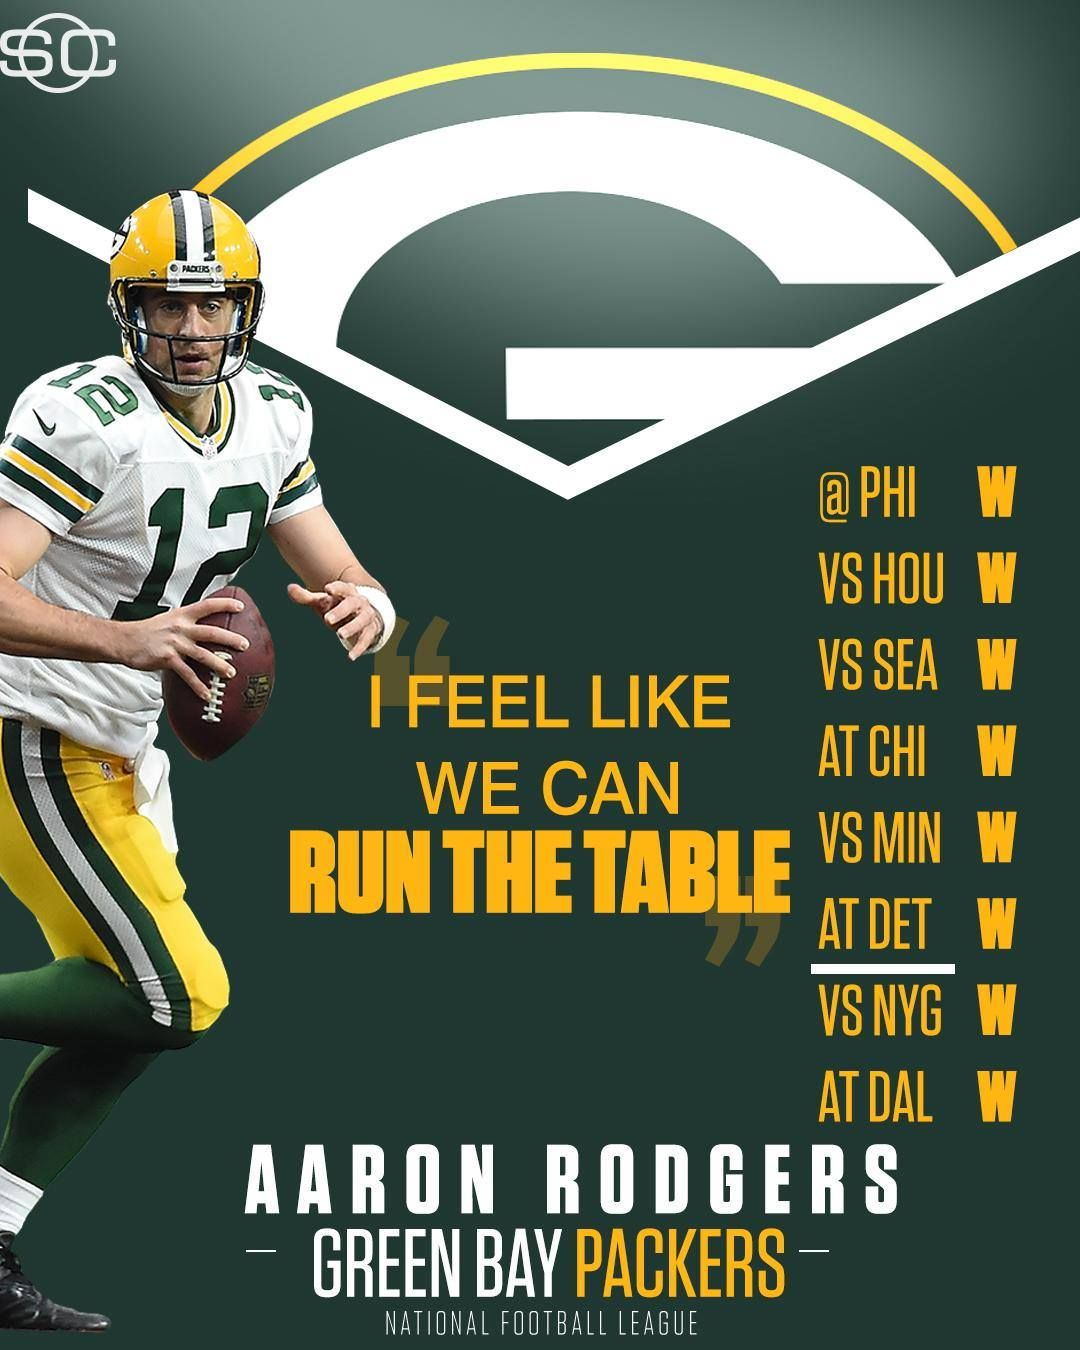 Aaron Rodgers And The Green Bay Packers Are 8 0 Since He Said He Felt They Could Run The Table Green Bay Packers Green Bay Rodgers Green Bay